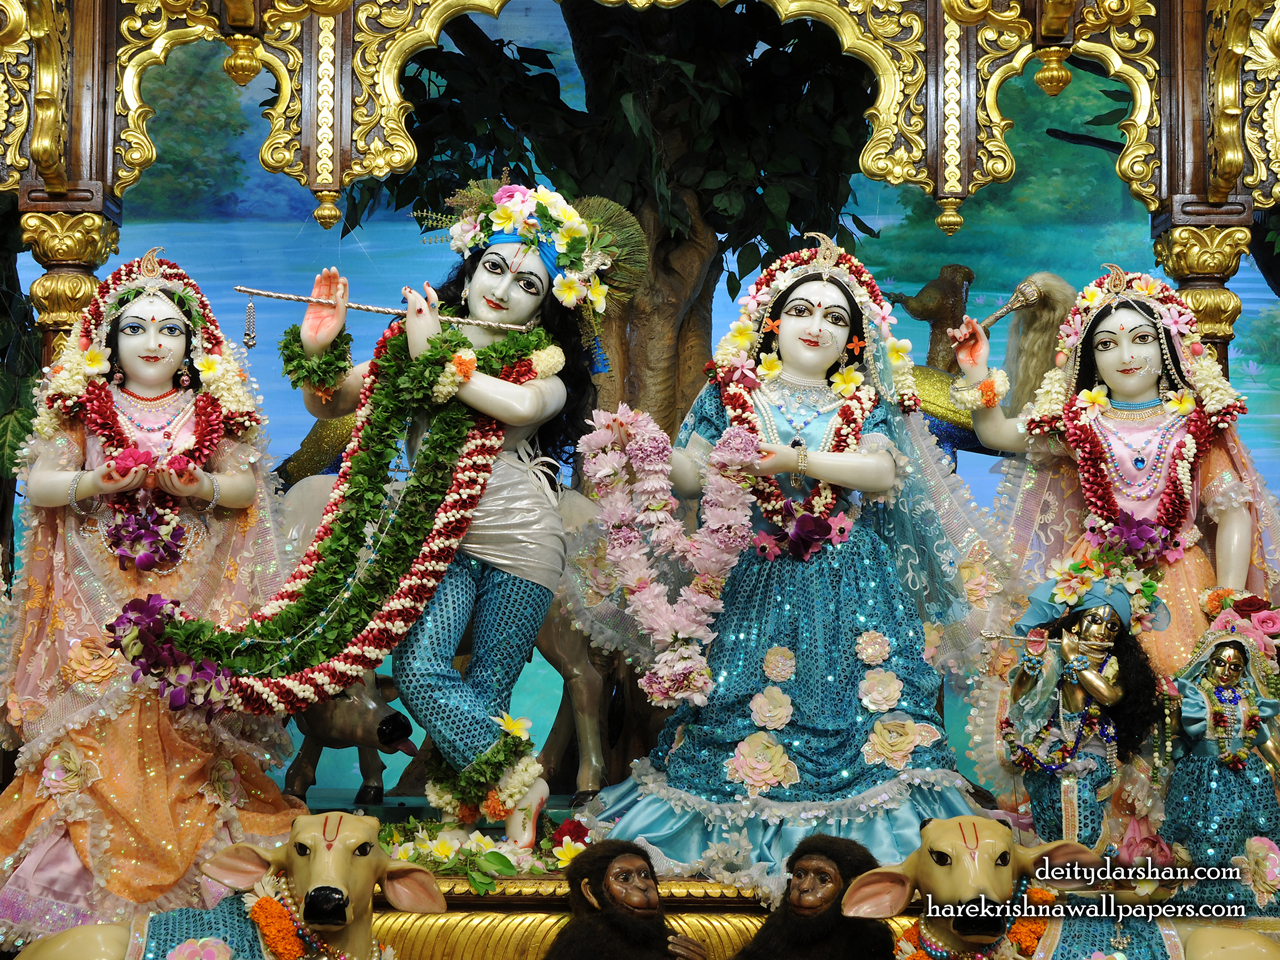 Sri Sri Radha Gopinath Lalita Vishakha Wallpaper (074) Size 1280x960 Download